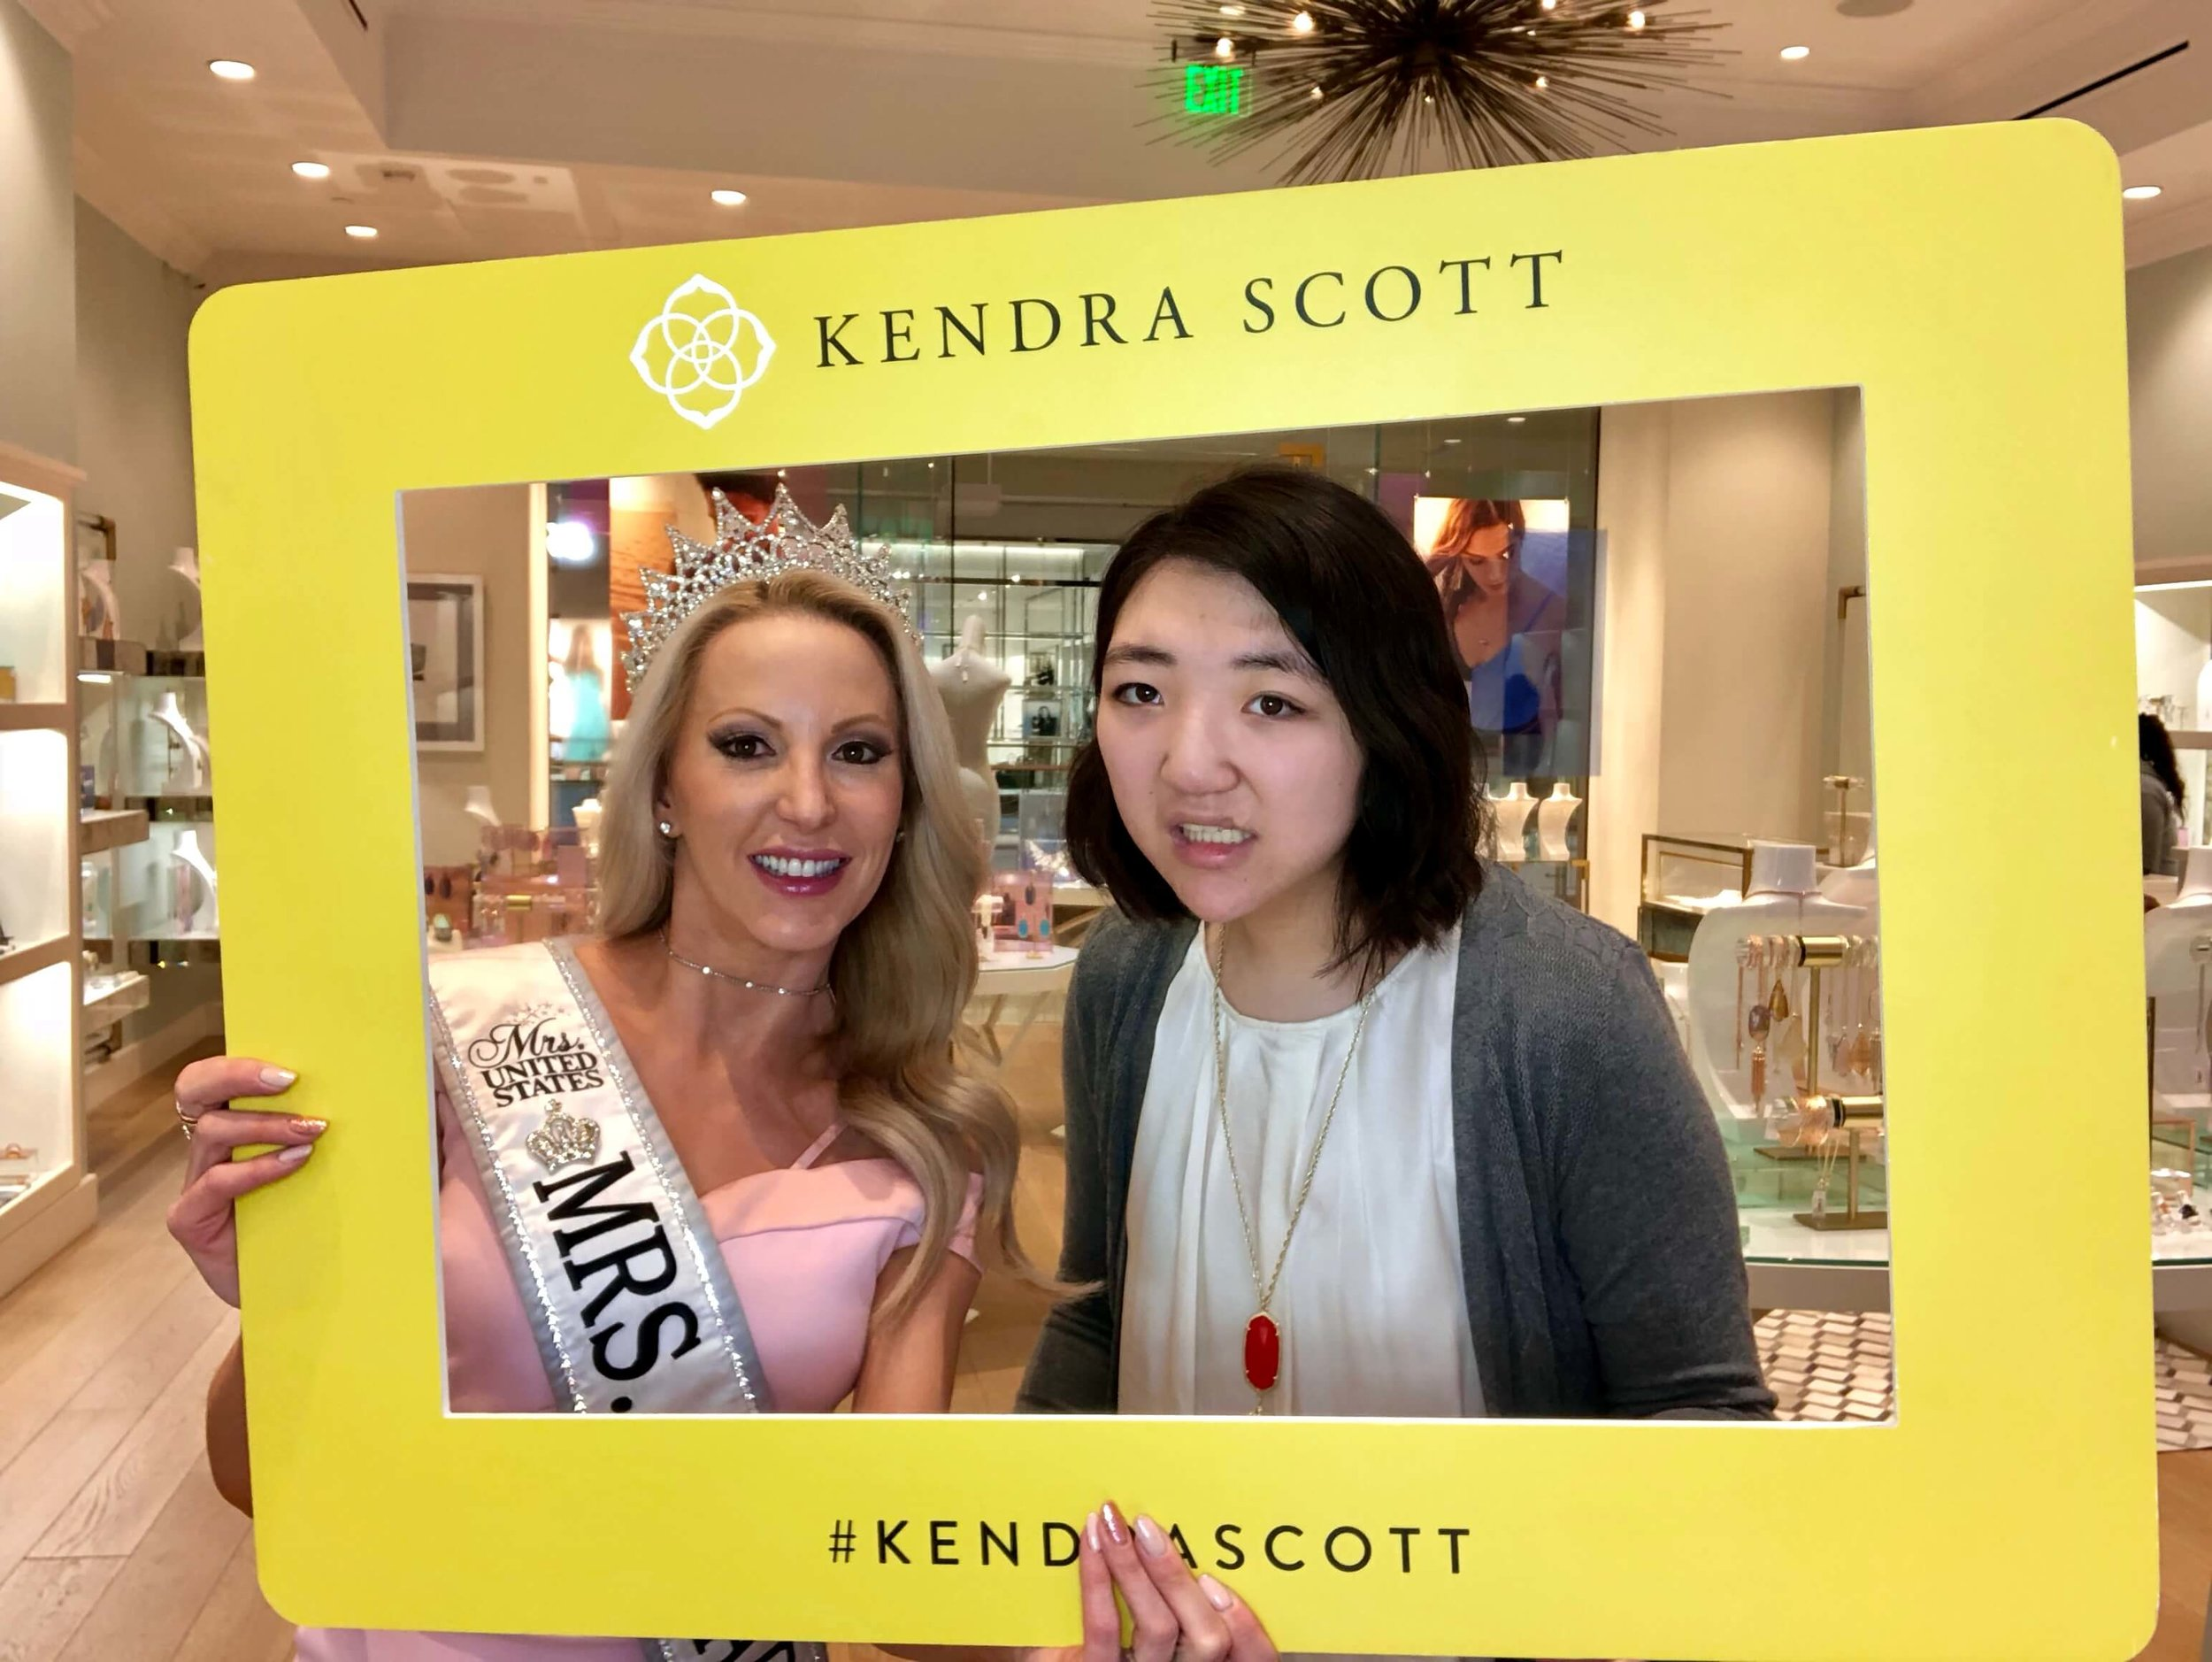 Kendra Scott Gives Back - To Benefit New Vista